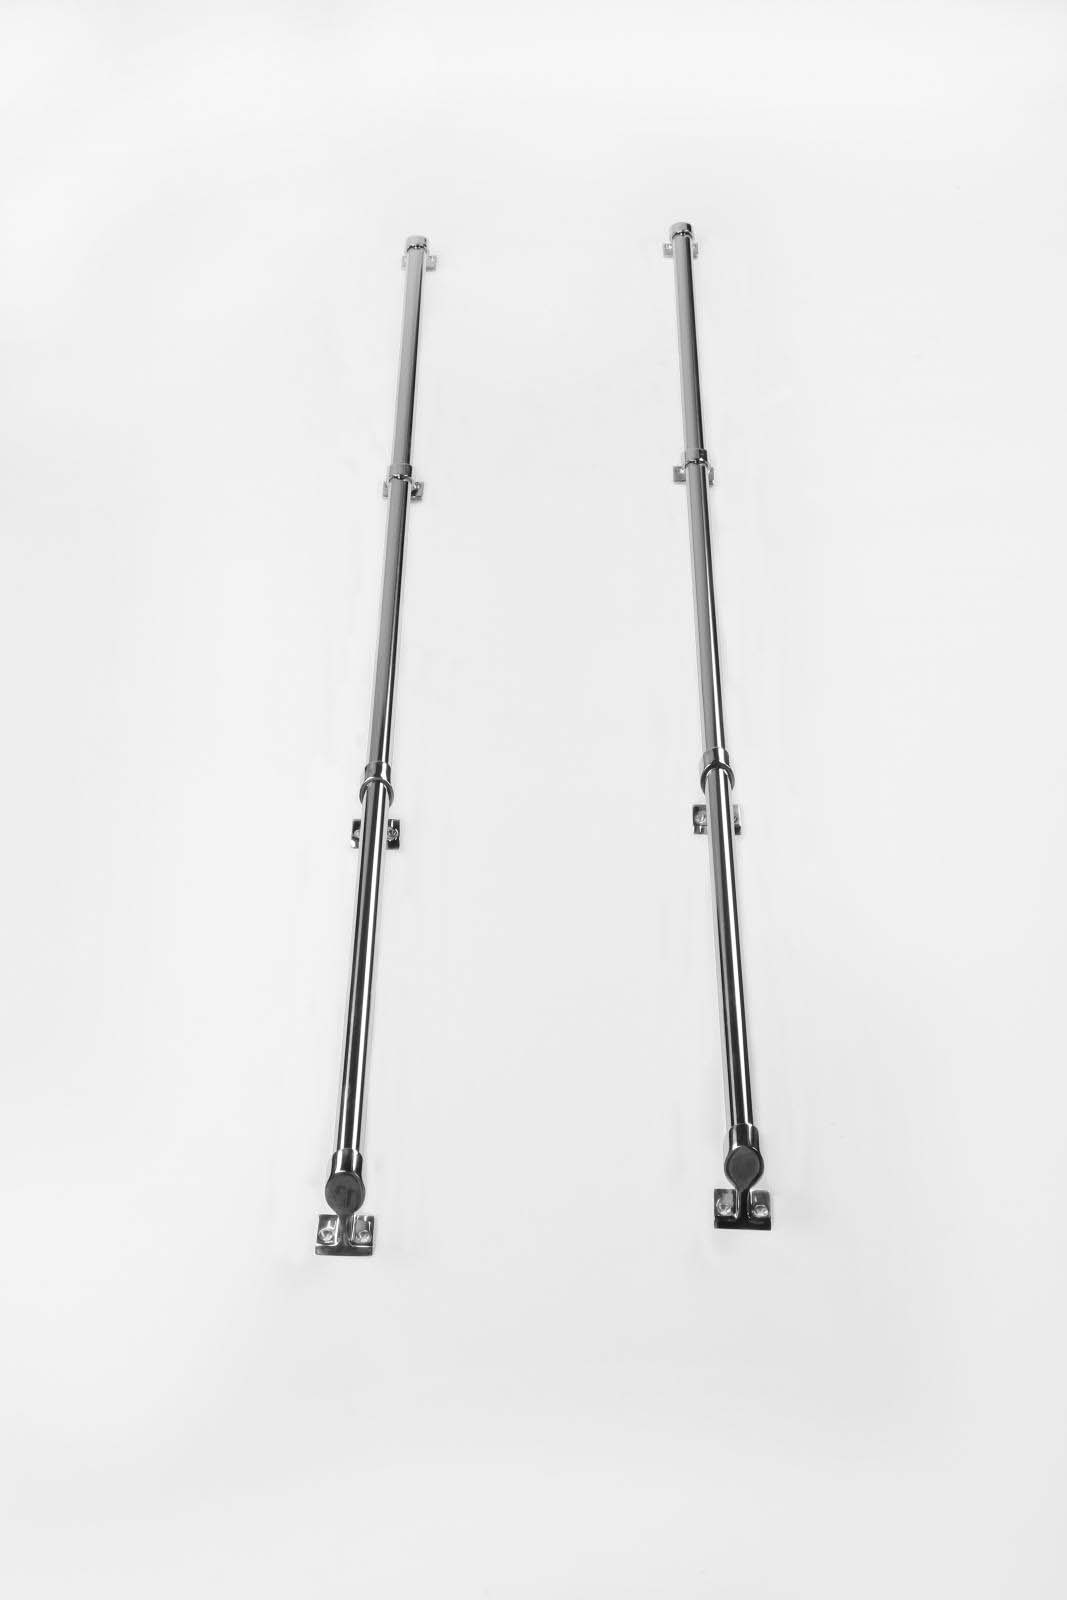 Mini Tube Truck Bed Rail Set 68 Inch Impact Stainless Steel MTR Perrycraft MR-I68-S